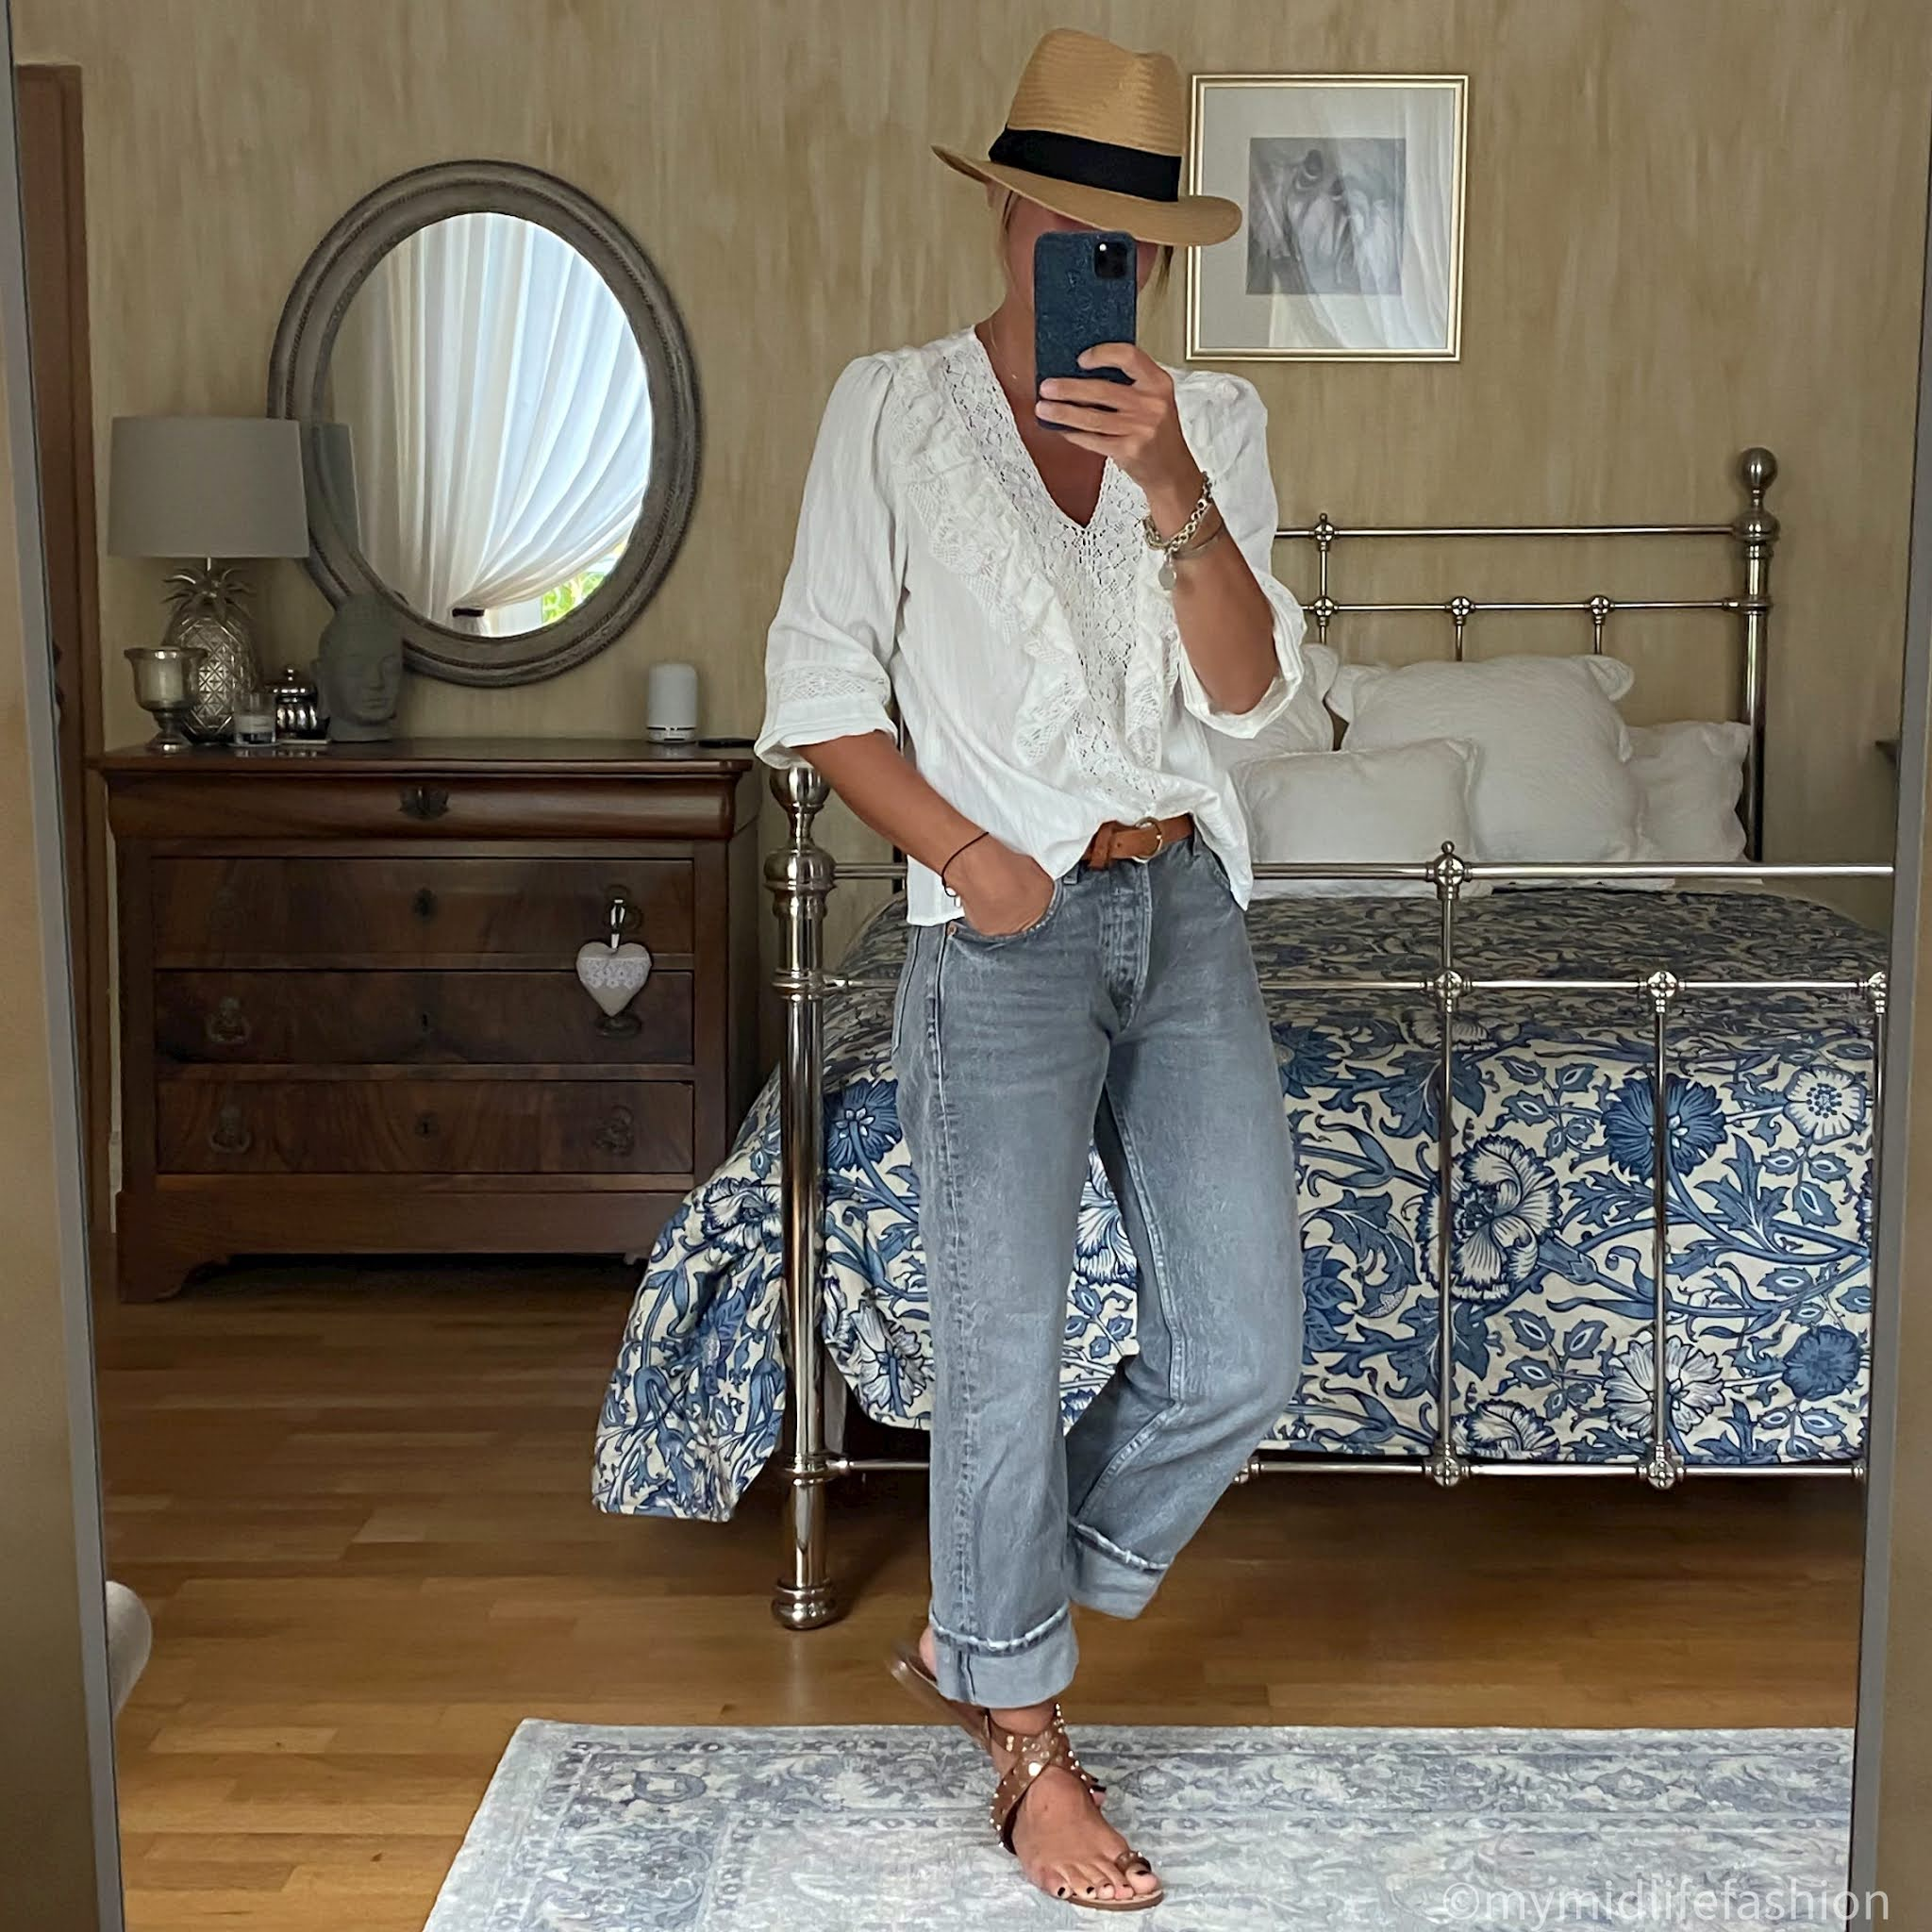 my midlife fashion, zara low rise straight leg jeans, zara embroidered white blouse, h and m Panama hat, Massimo Dutti leather belt, basalt studded leather sandals